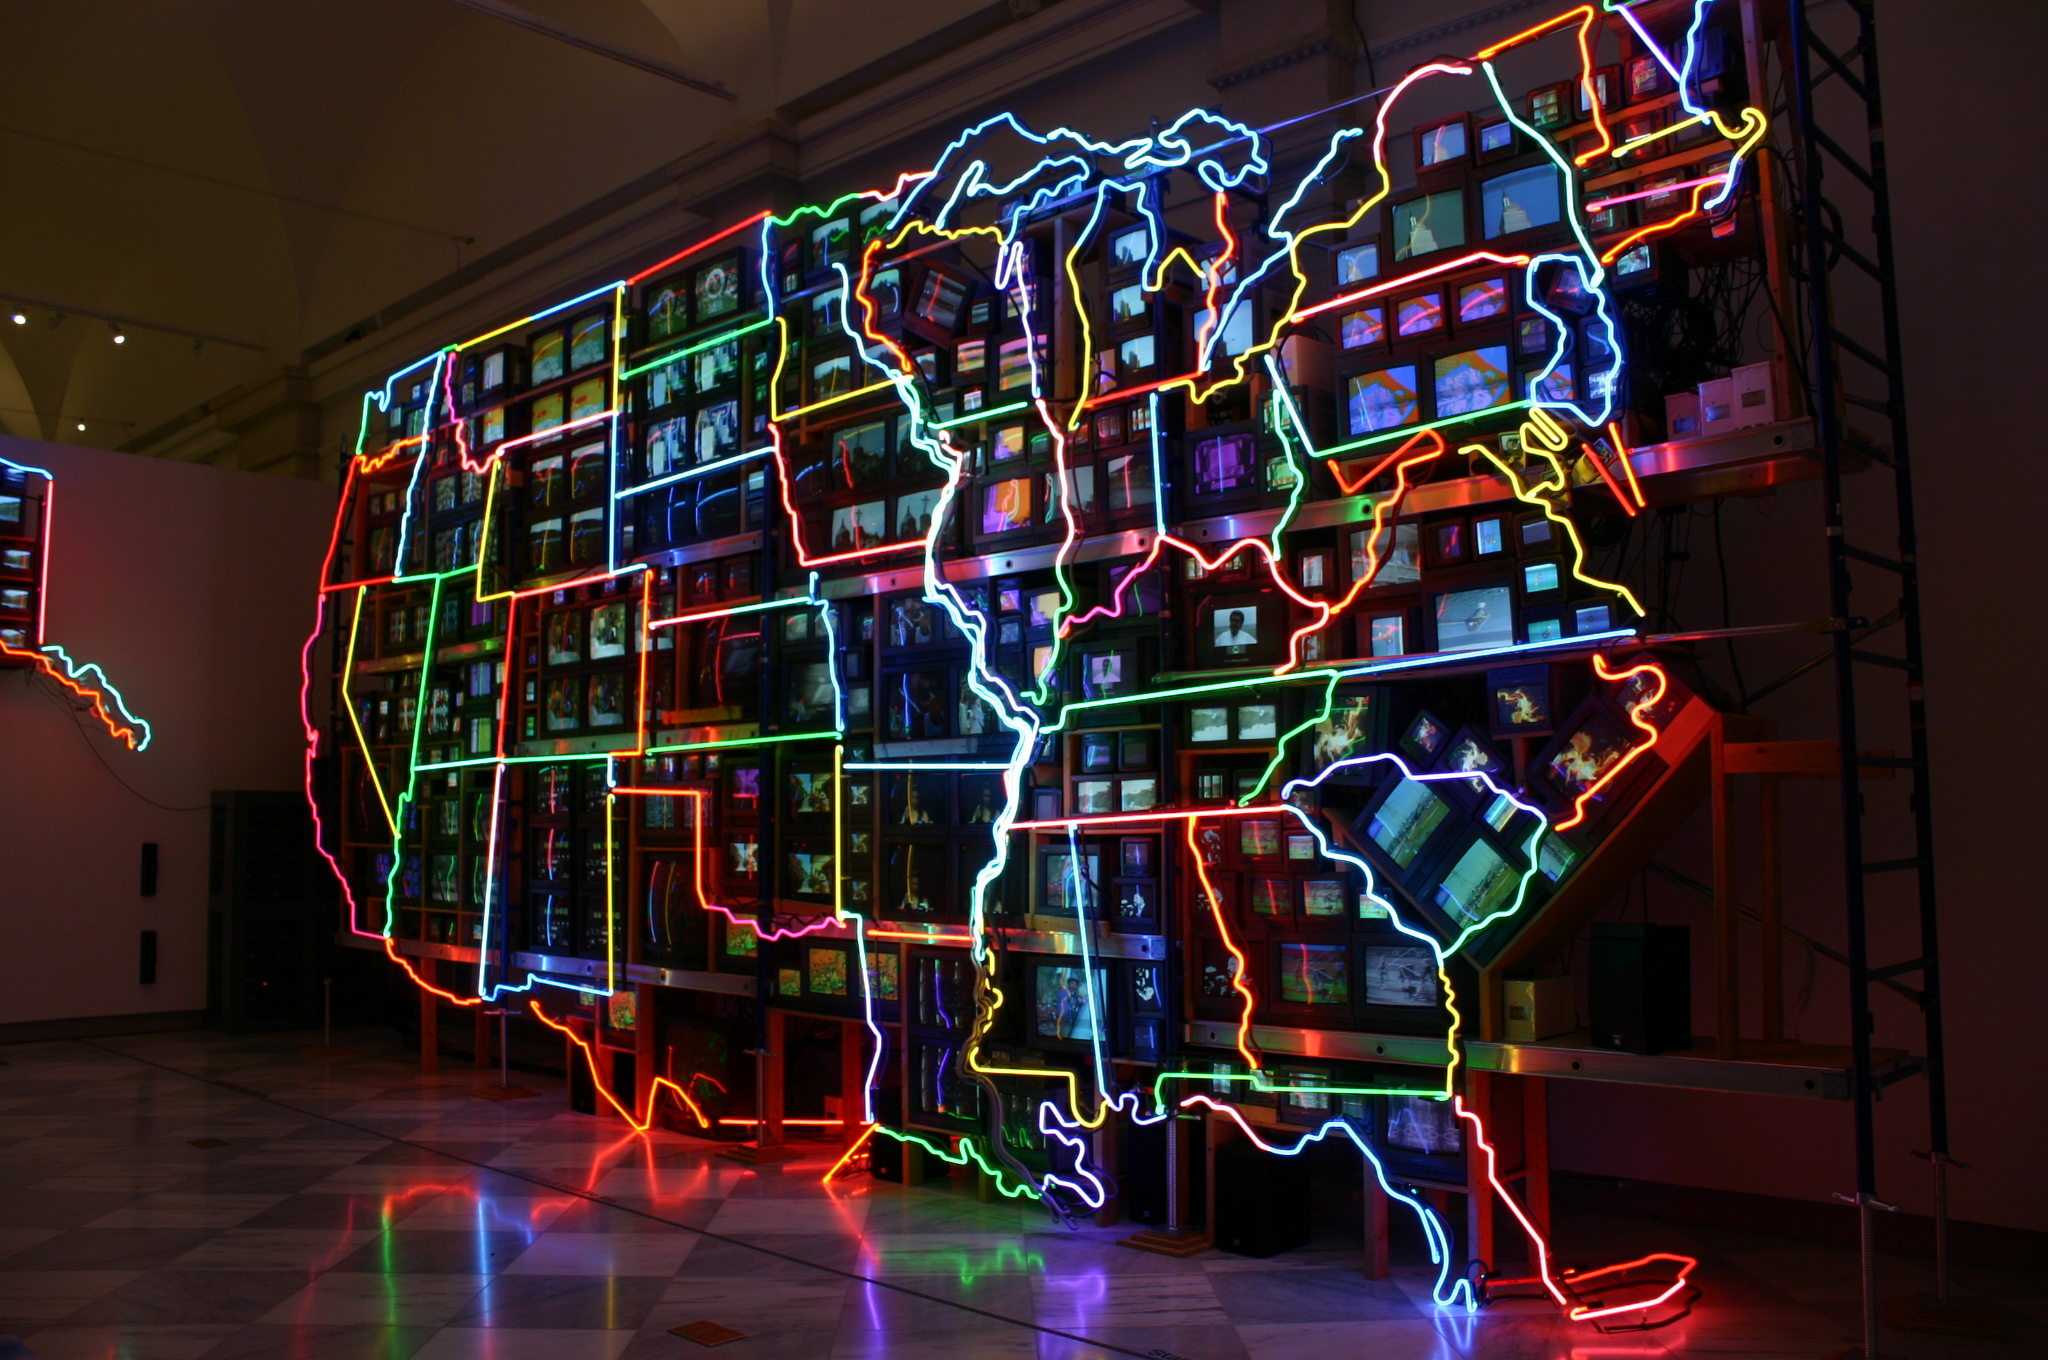 arts design nam june paik at smithsonian american art museum.